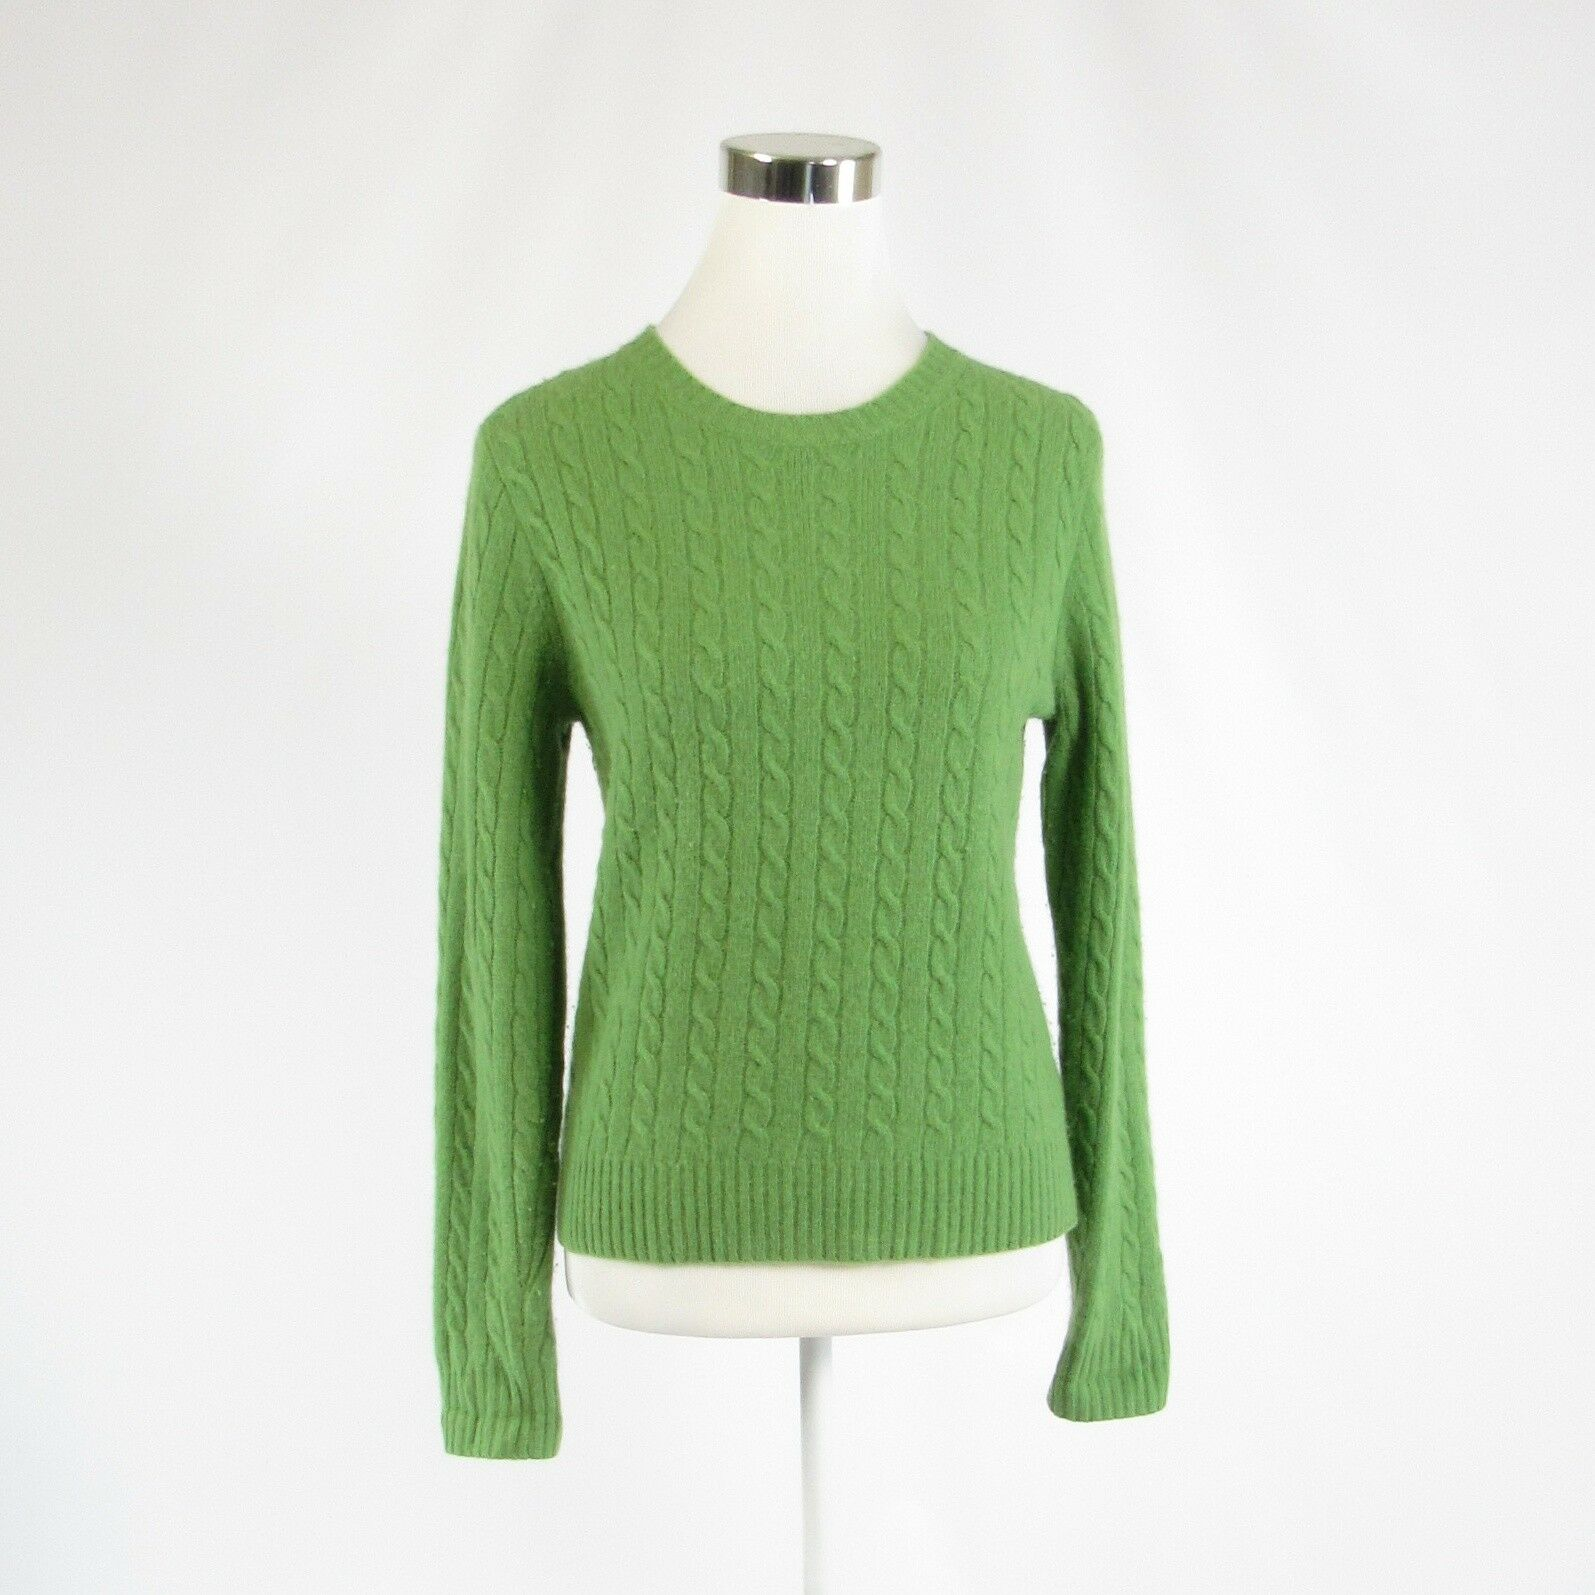 Green cotton blend J. CREW long sleeve crewneck cableknit sweater S-Newish